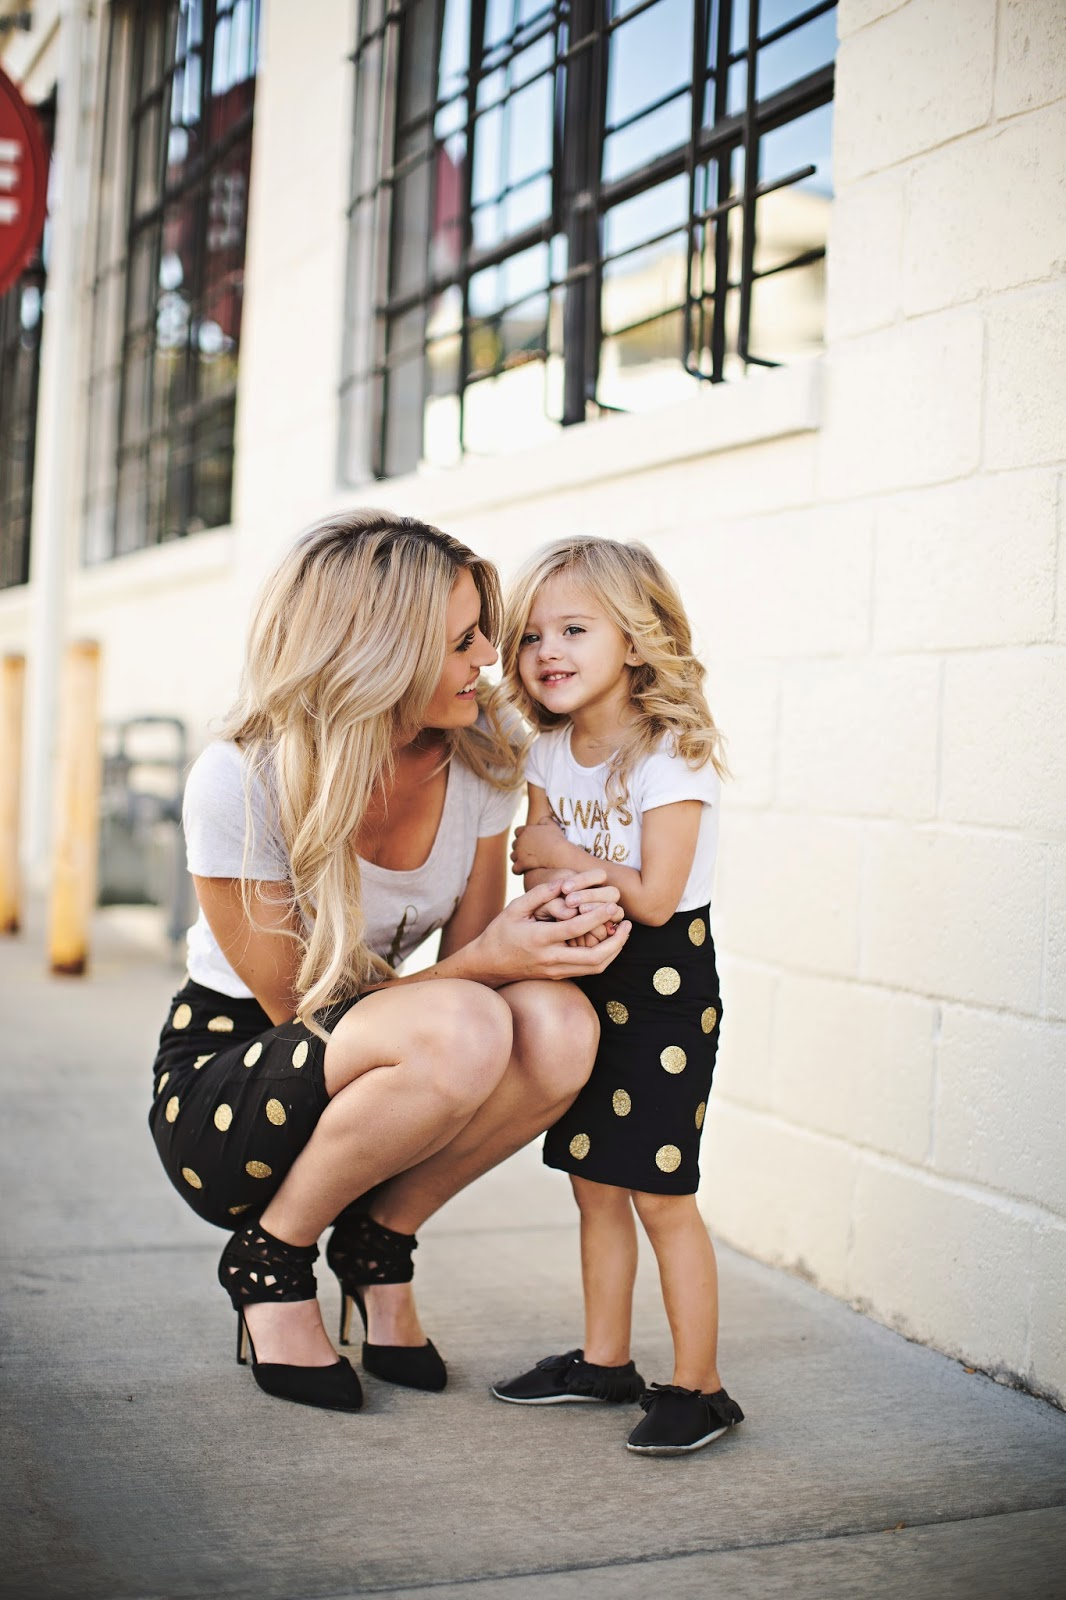 Children's Fashion Polka Dot Skirt and White Shirt Black Shoes Mom and Daughter Look Alike